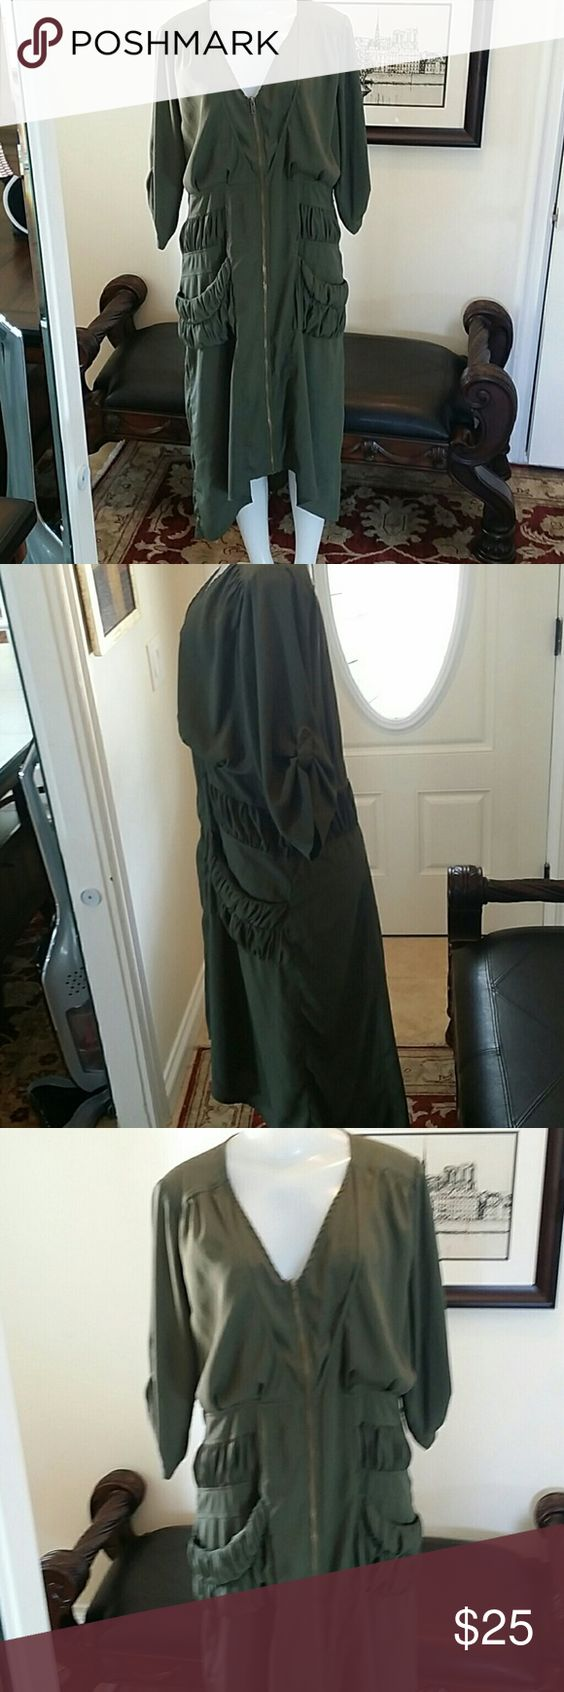 Military High Low Zip Front Dress Good condition Dresses